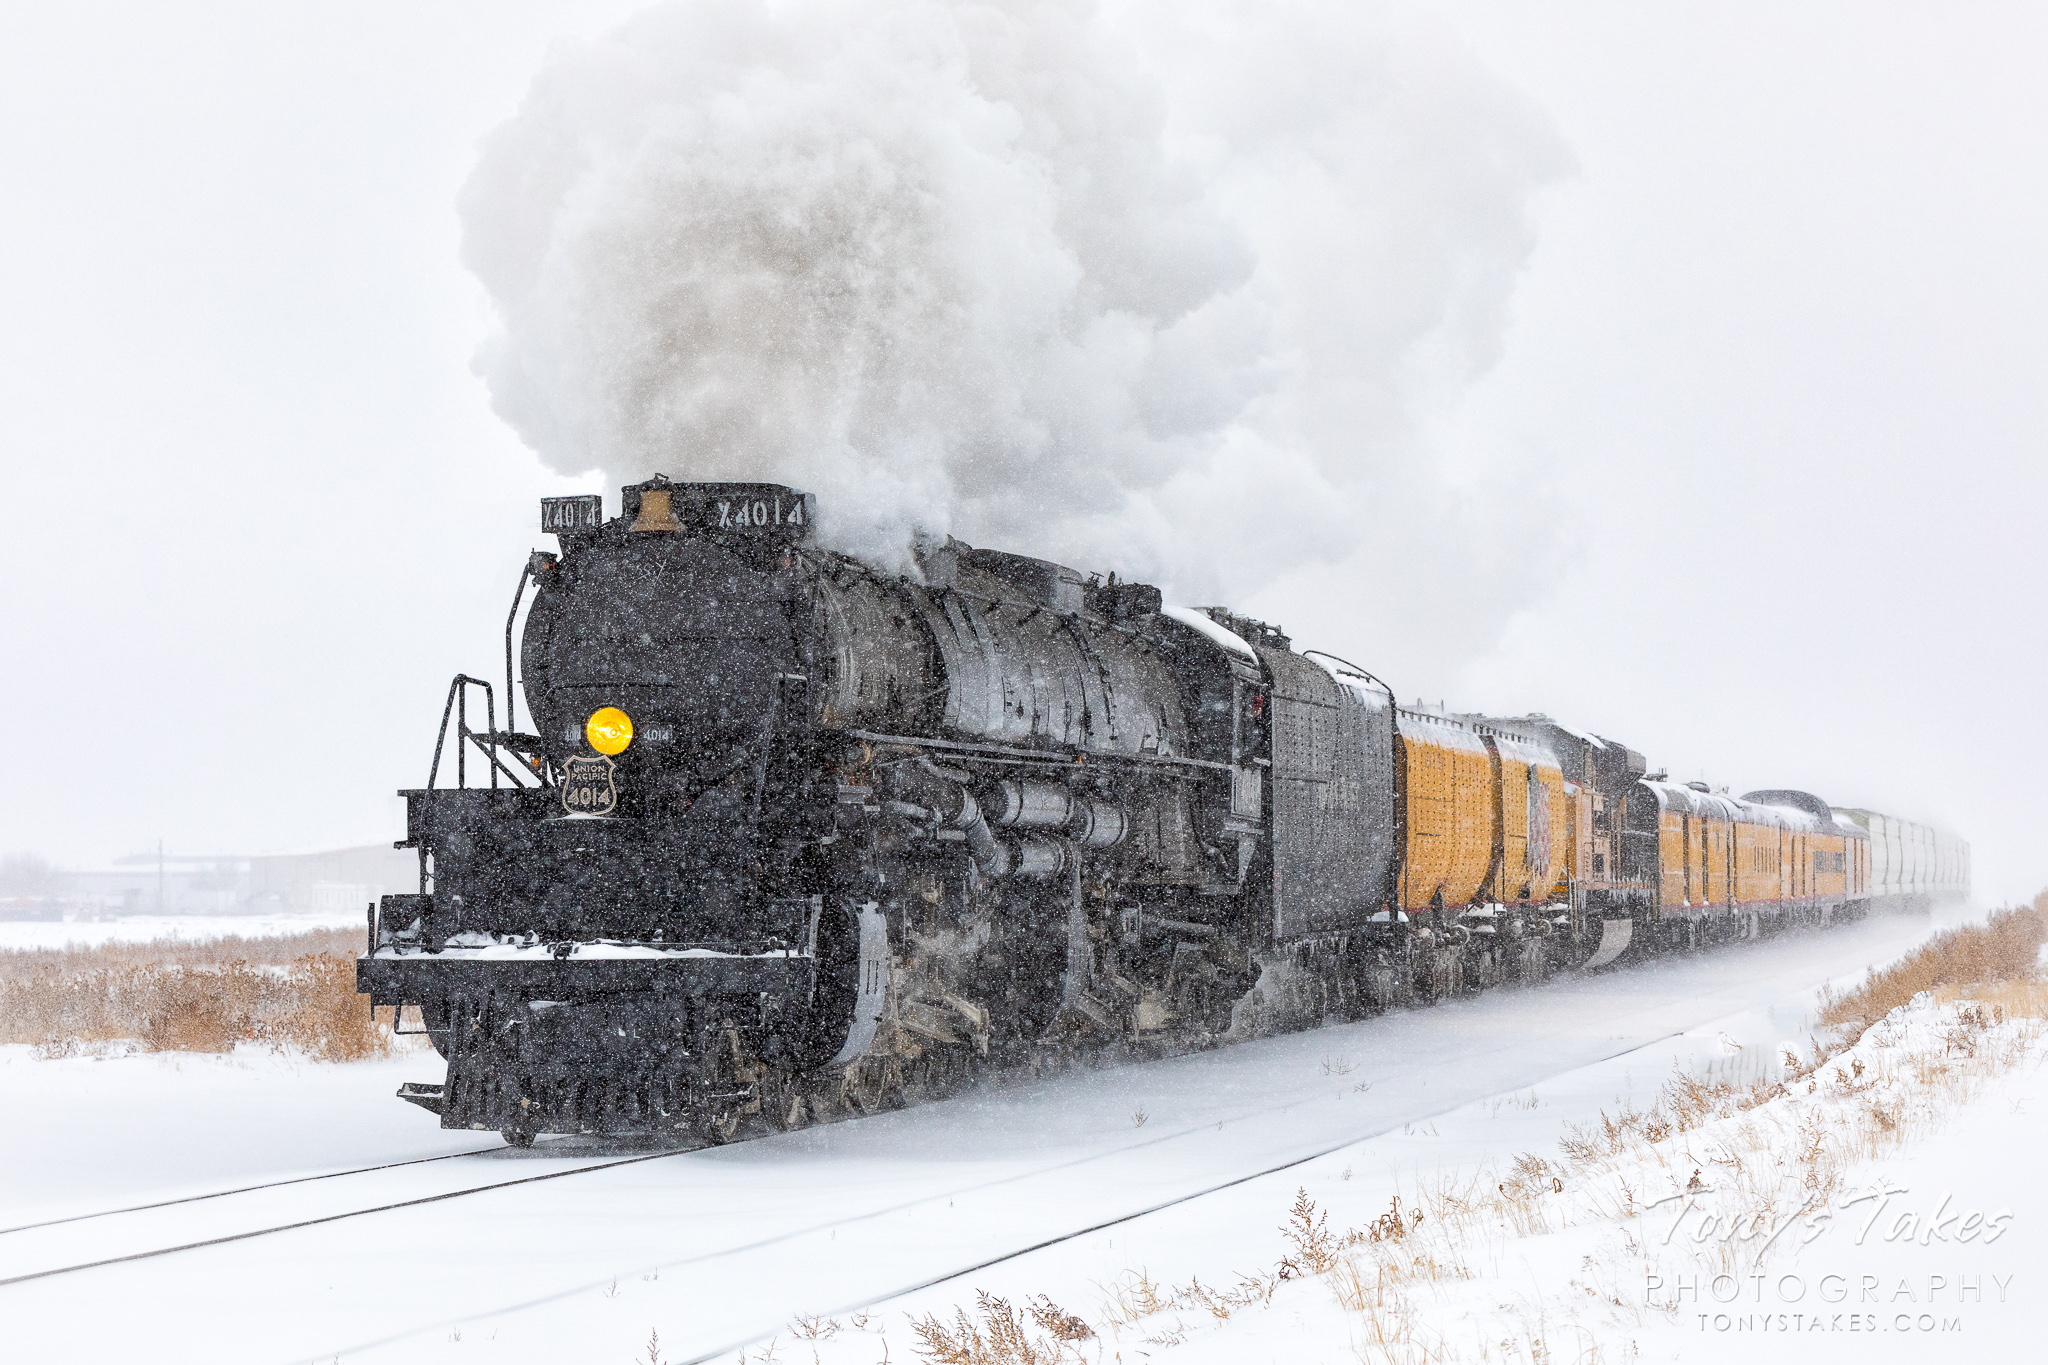 The Polar Express heads northbound in a snowstorm